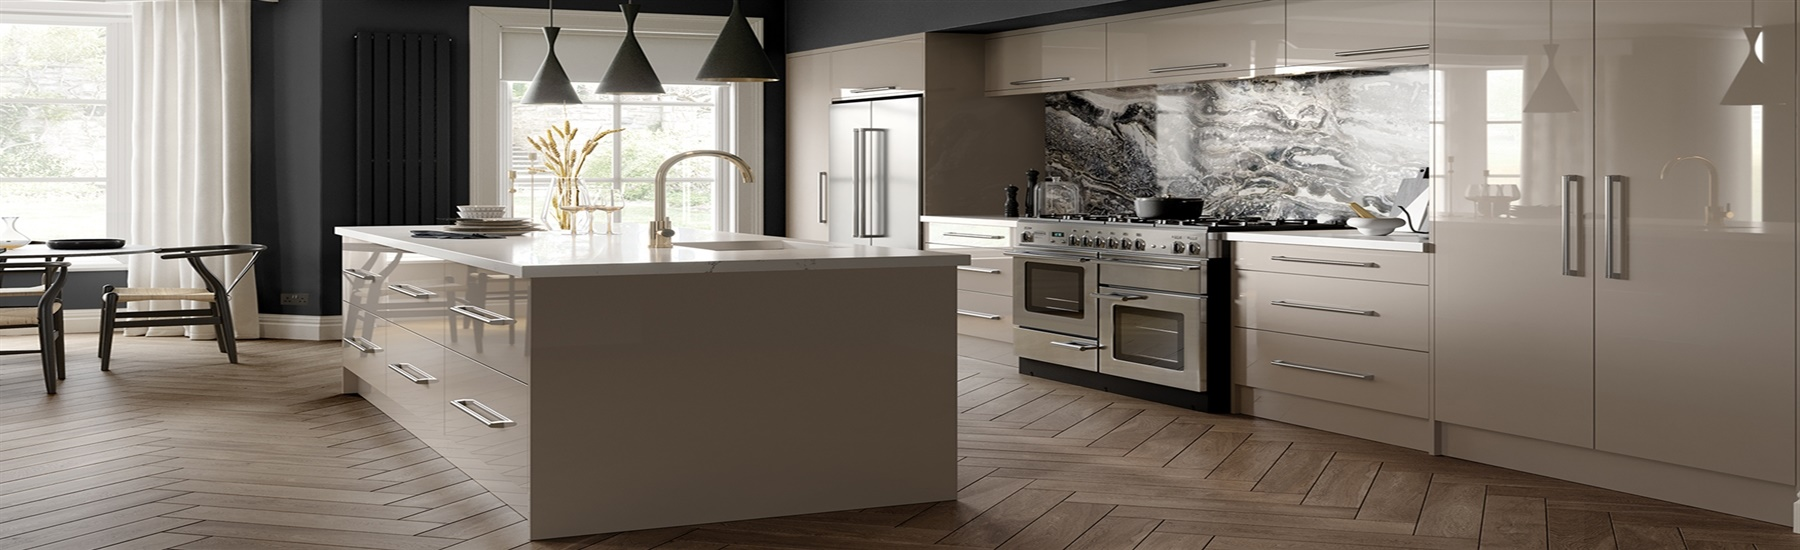 gloss-stone-grey-kitchen-door-header